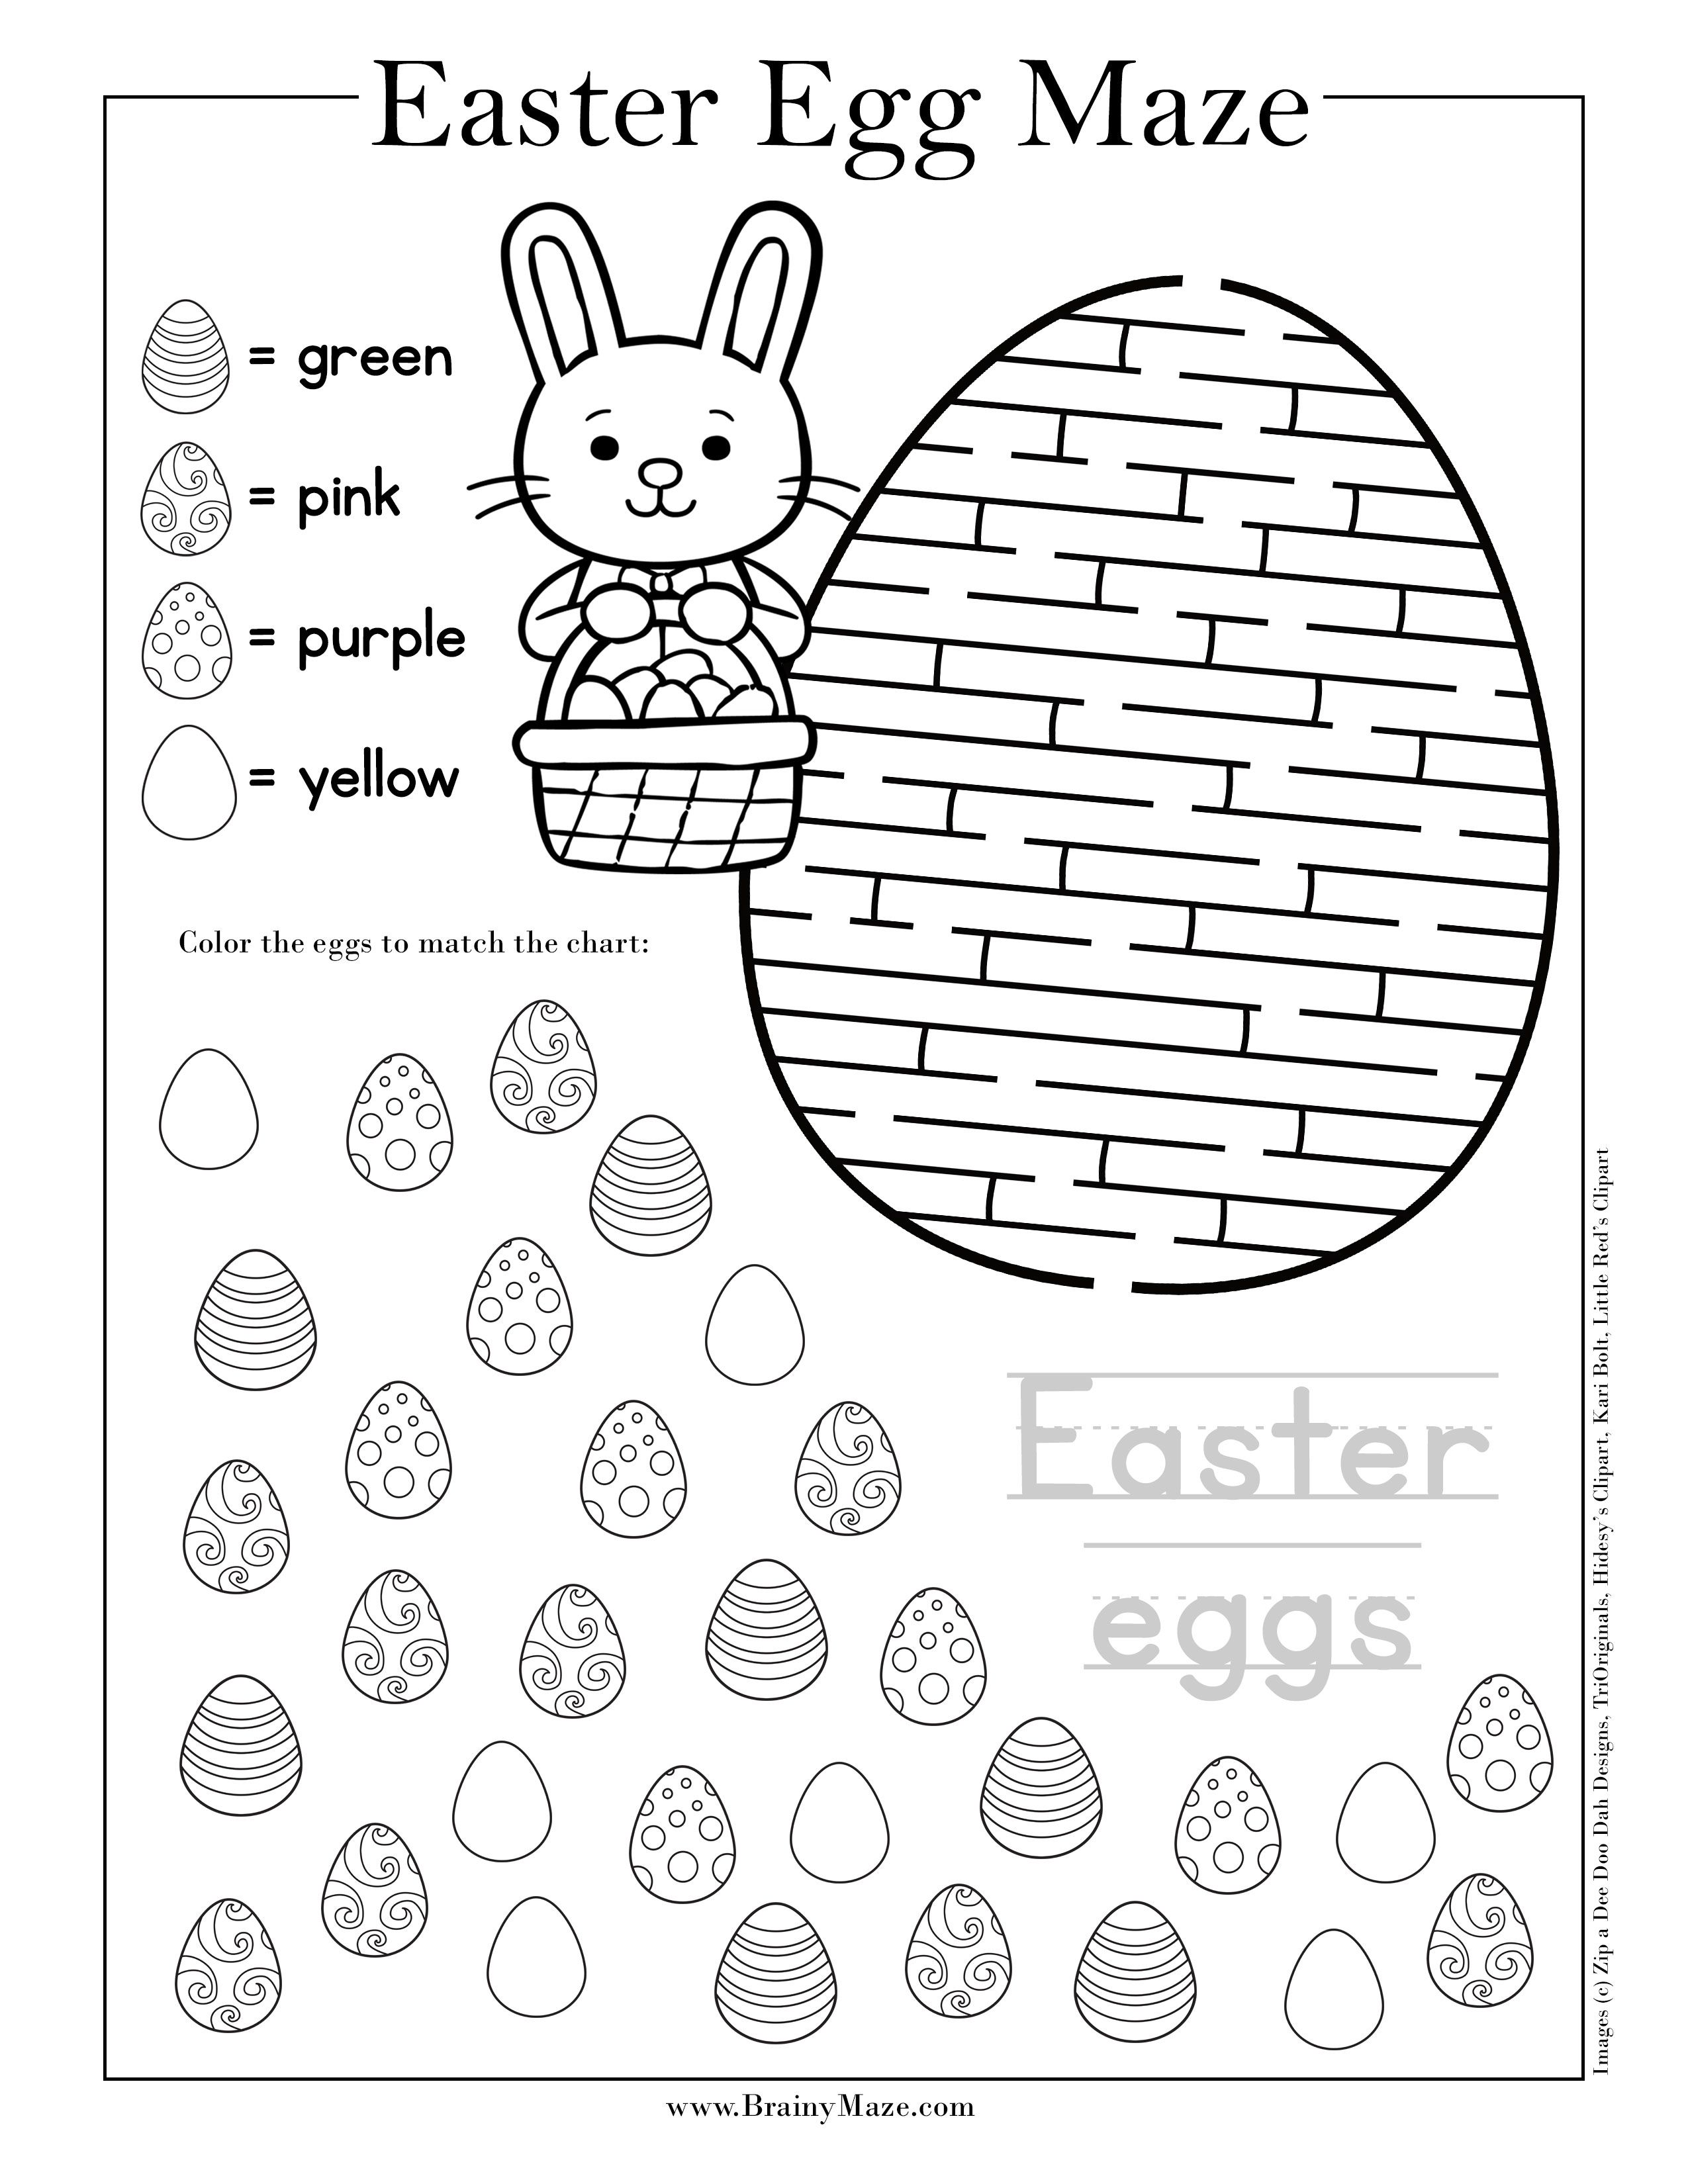 image relating to Easter Maze Printable known as Easter Mazes for Children - Brainy Maze No cost Printables